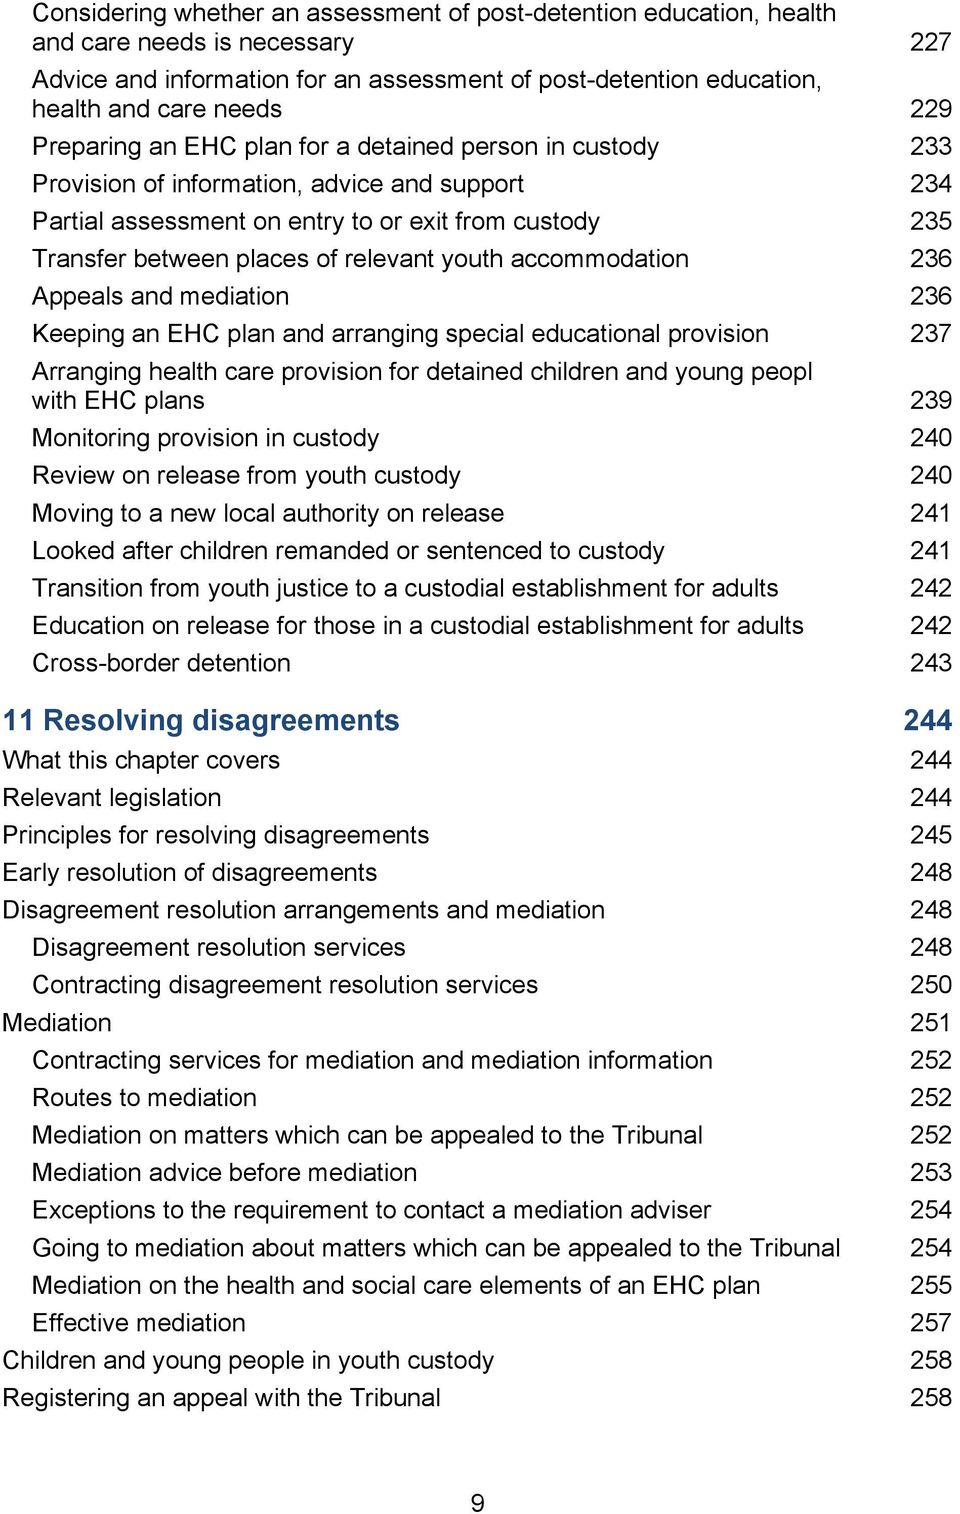 youth accommodation 236 Appeals and mediation 236 Keeping an EHC plan and arranging special educational provision 237 Arranging health care provision for detained children and young peopl with EHC